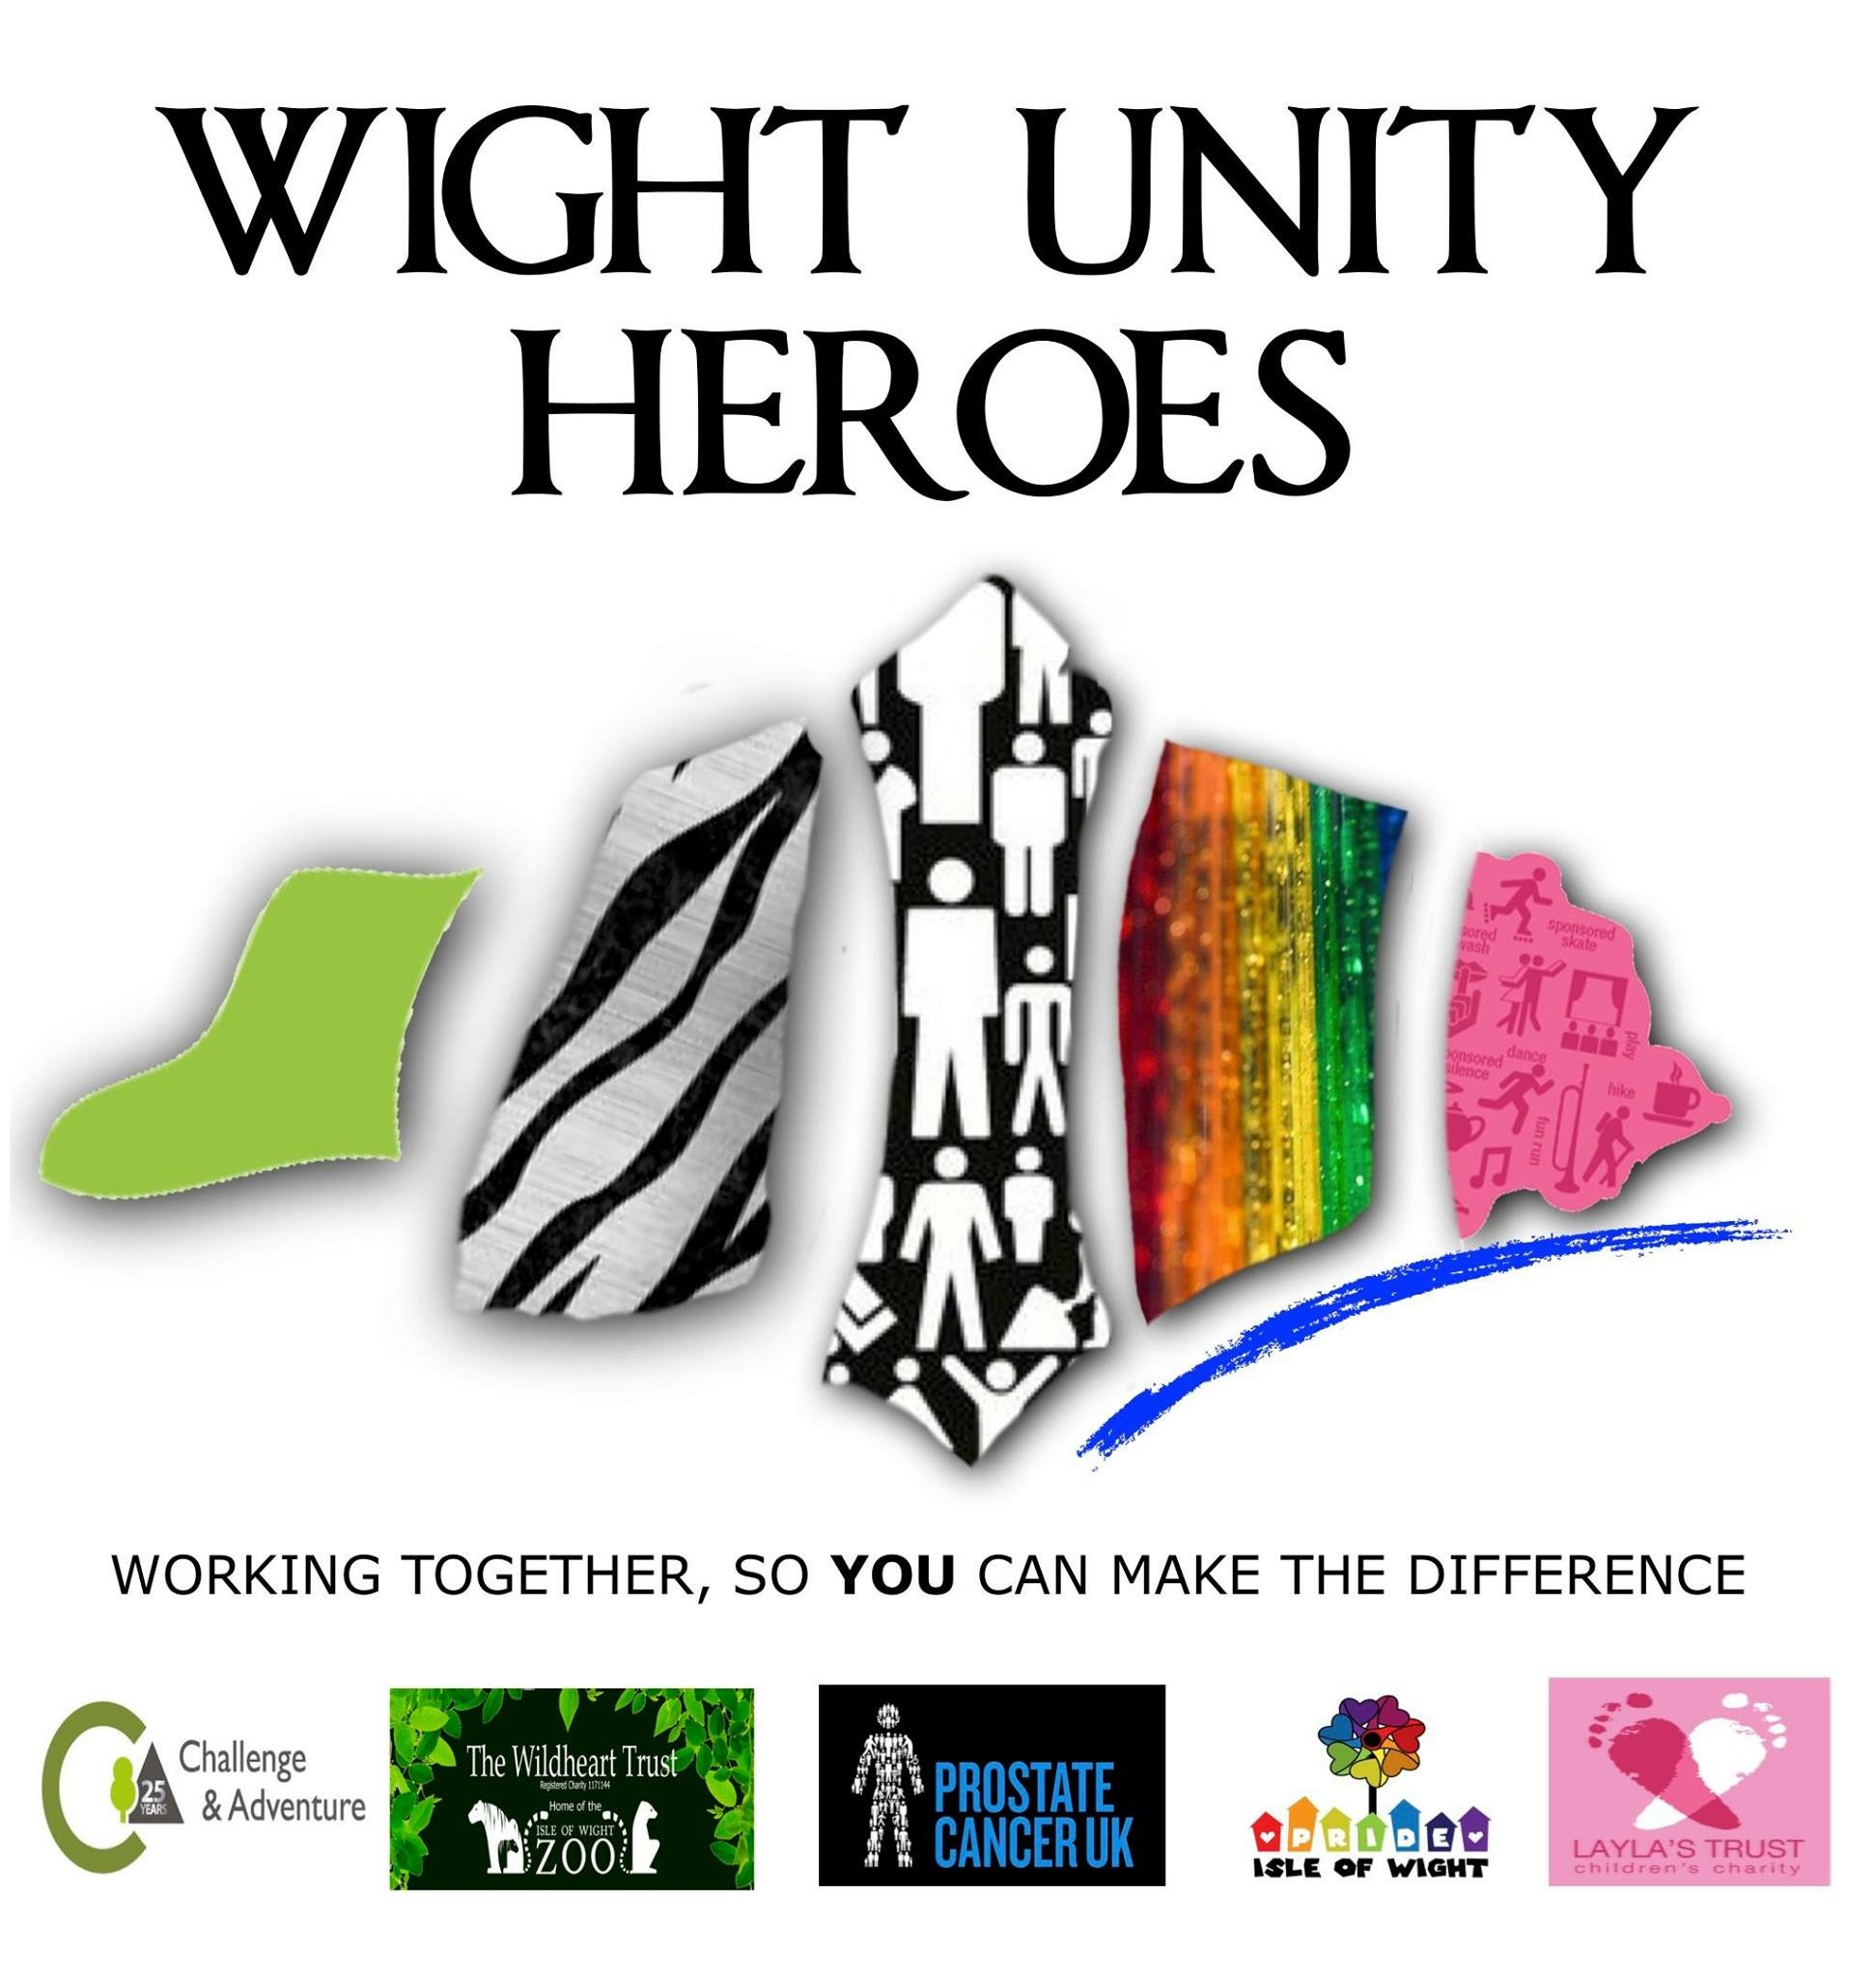 Wight Unity Heroes Down Under